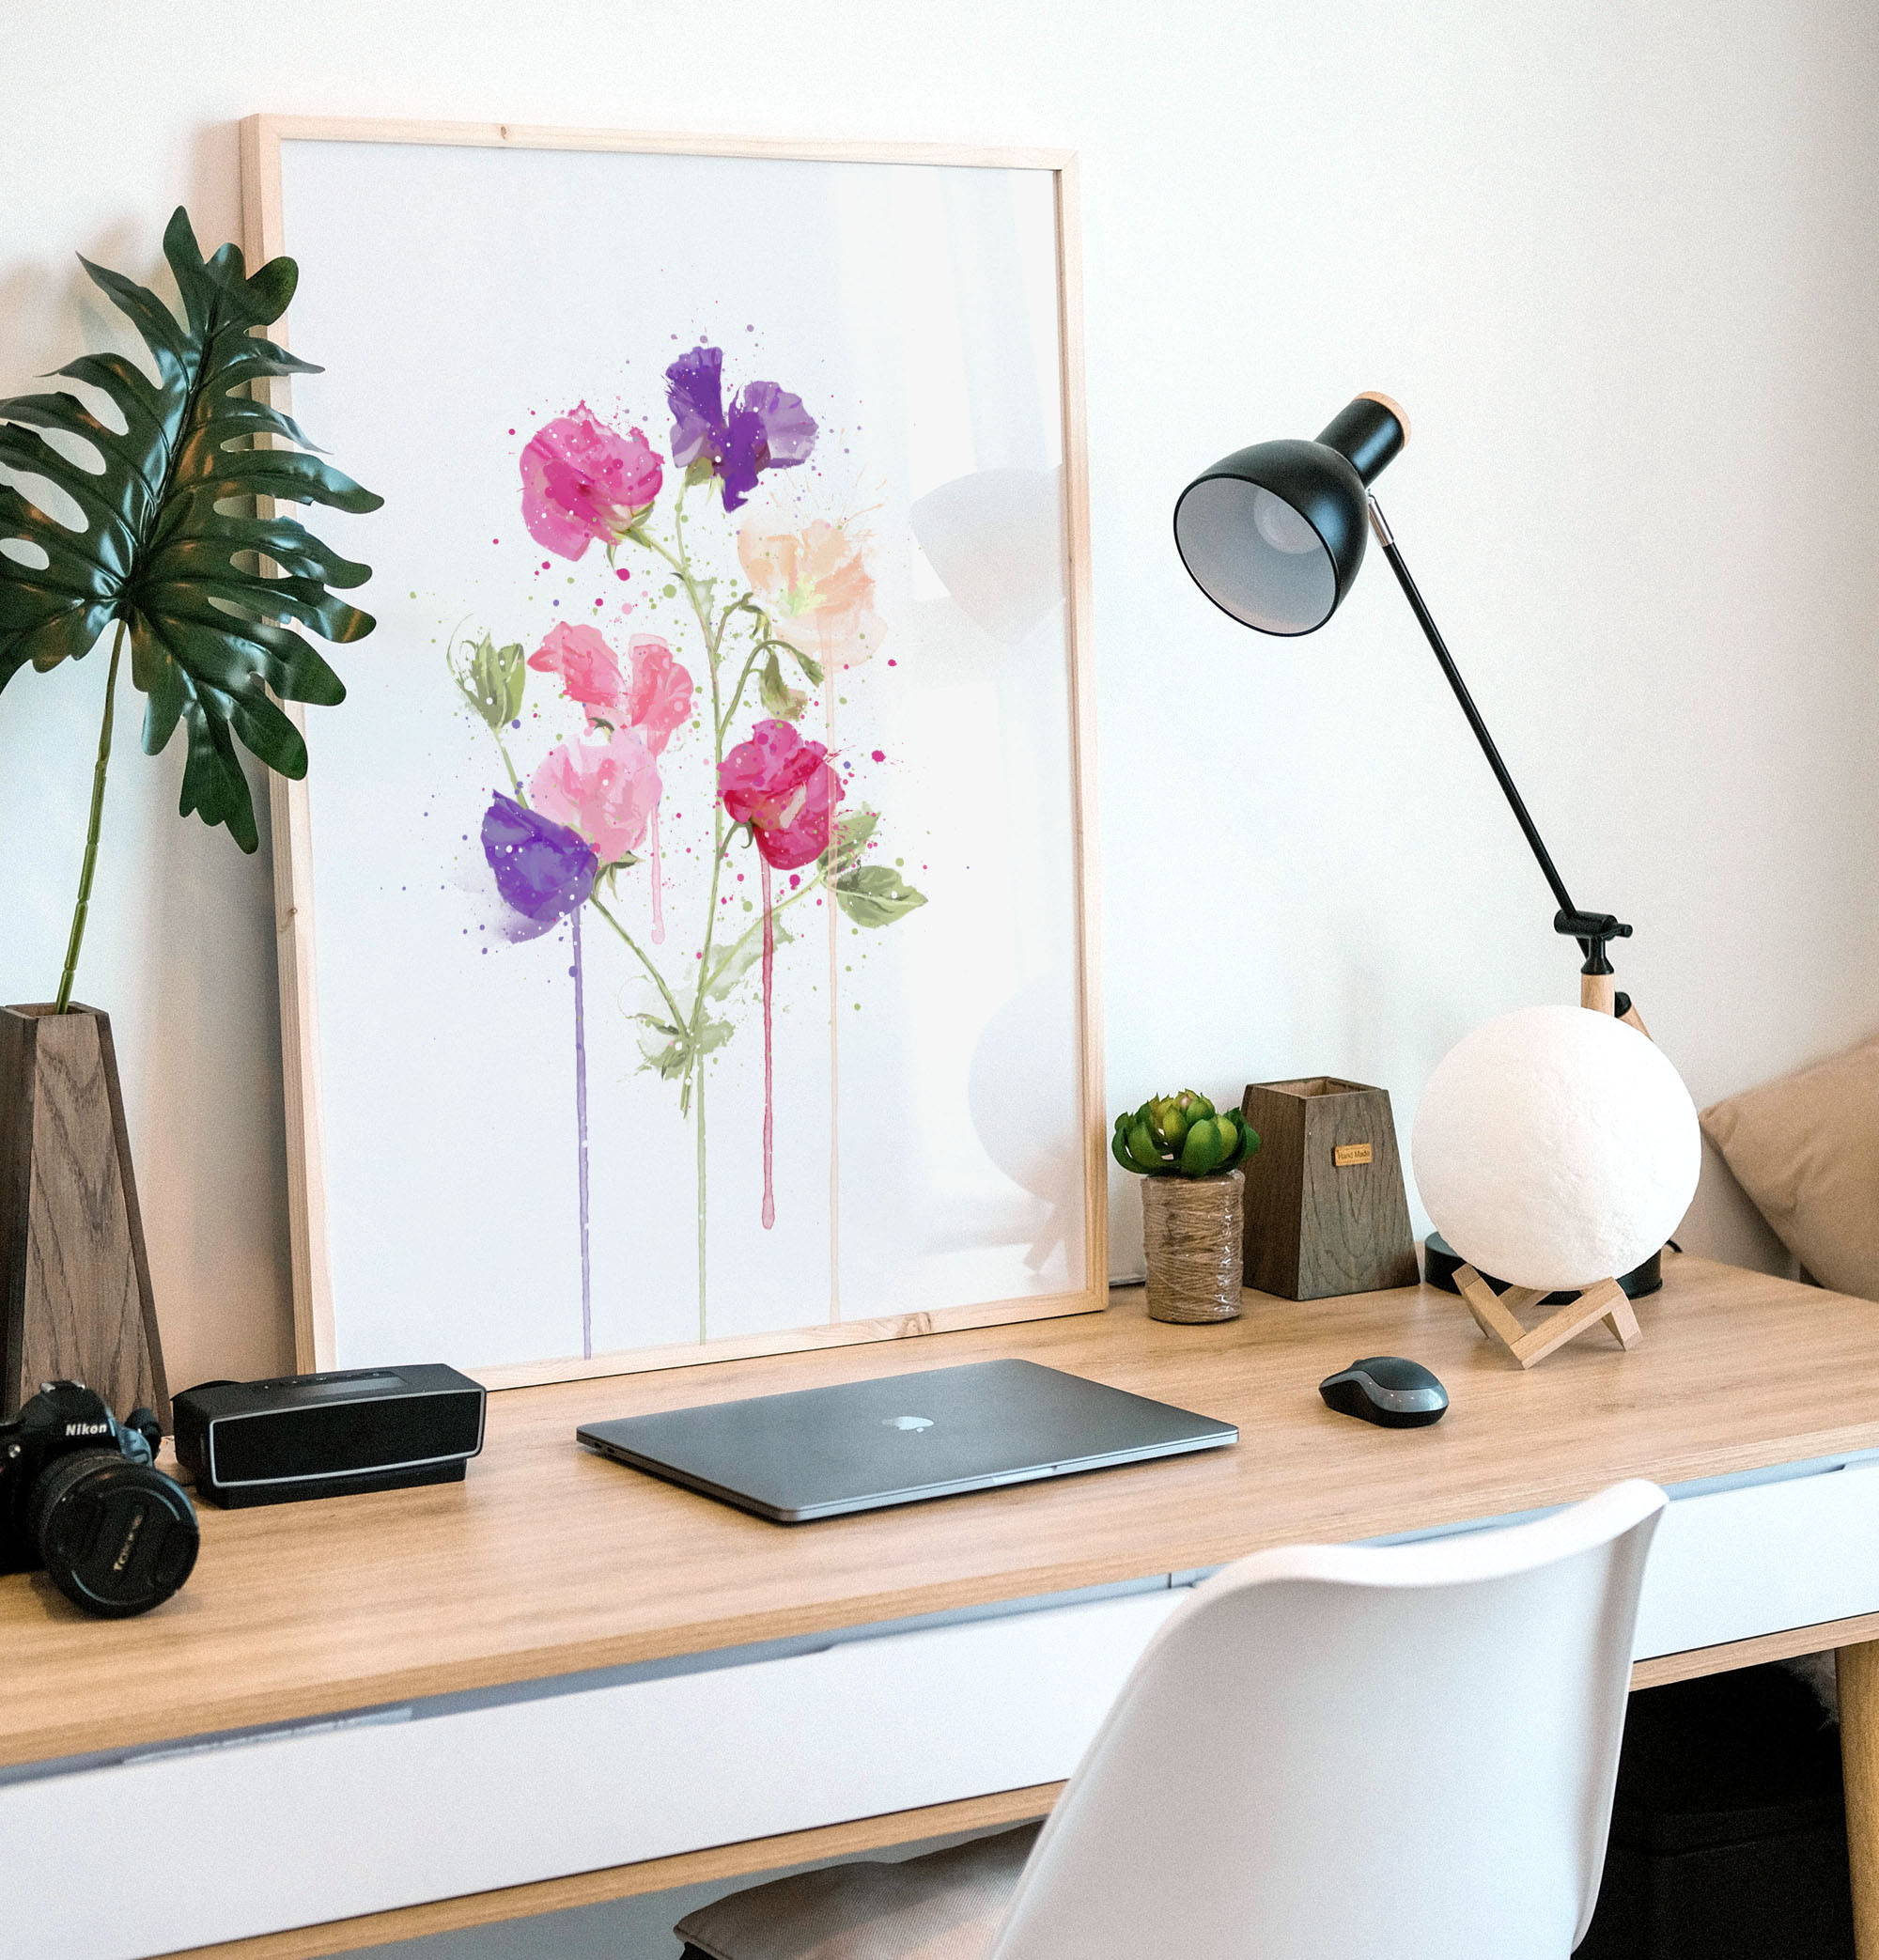 Home office desk setup with Sweet Pea wall art print